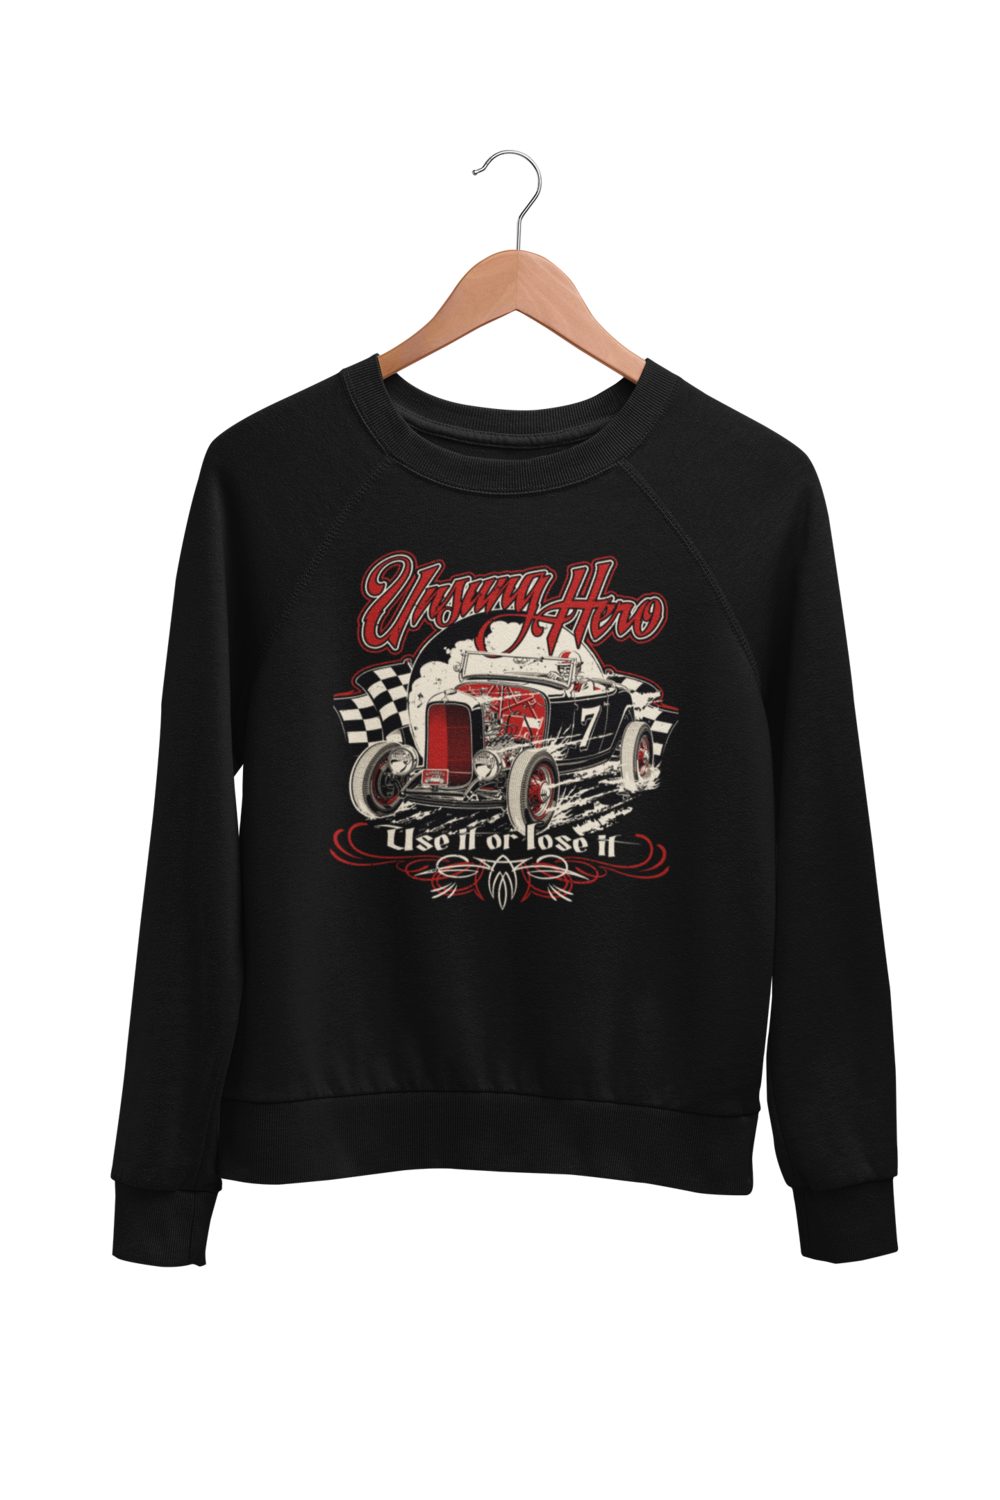 """UNSUNG HERO """"Use it or lose it"""" SWEATSHIRT UNISEX by BY Ger """"Dutch Courage"""" Peters artwork"""